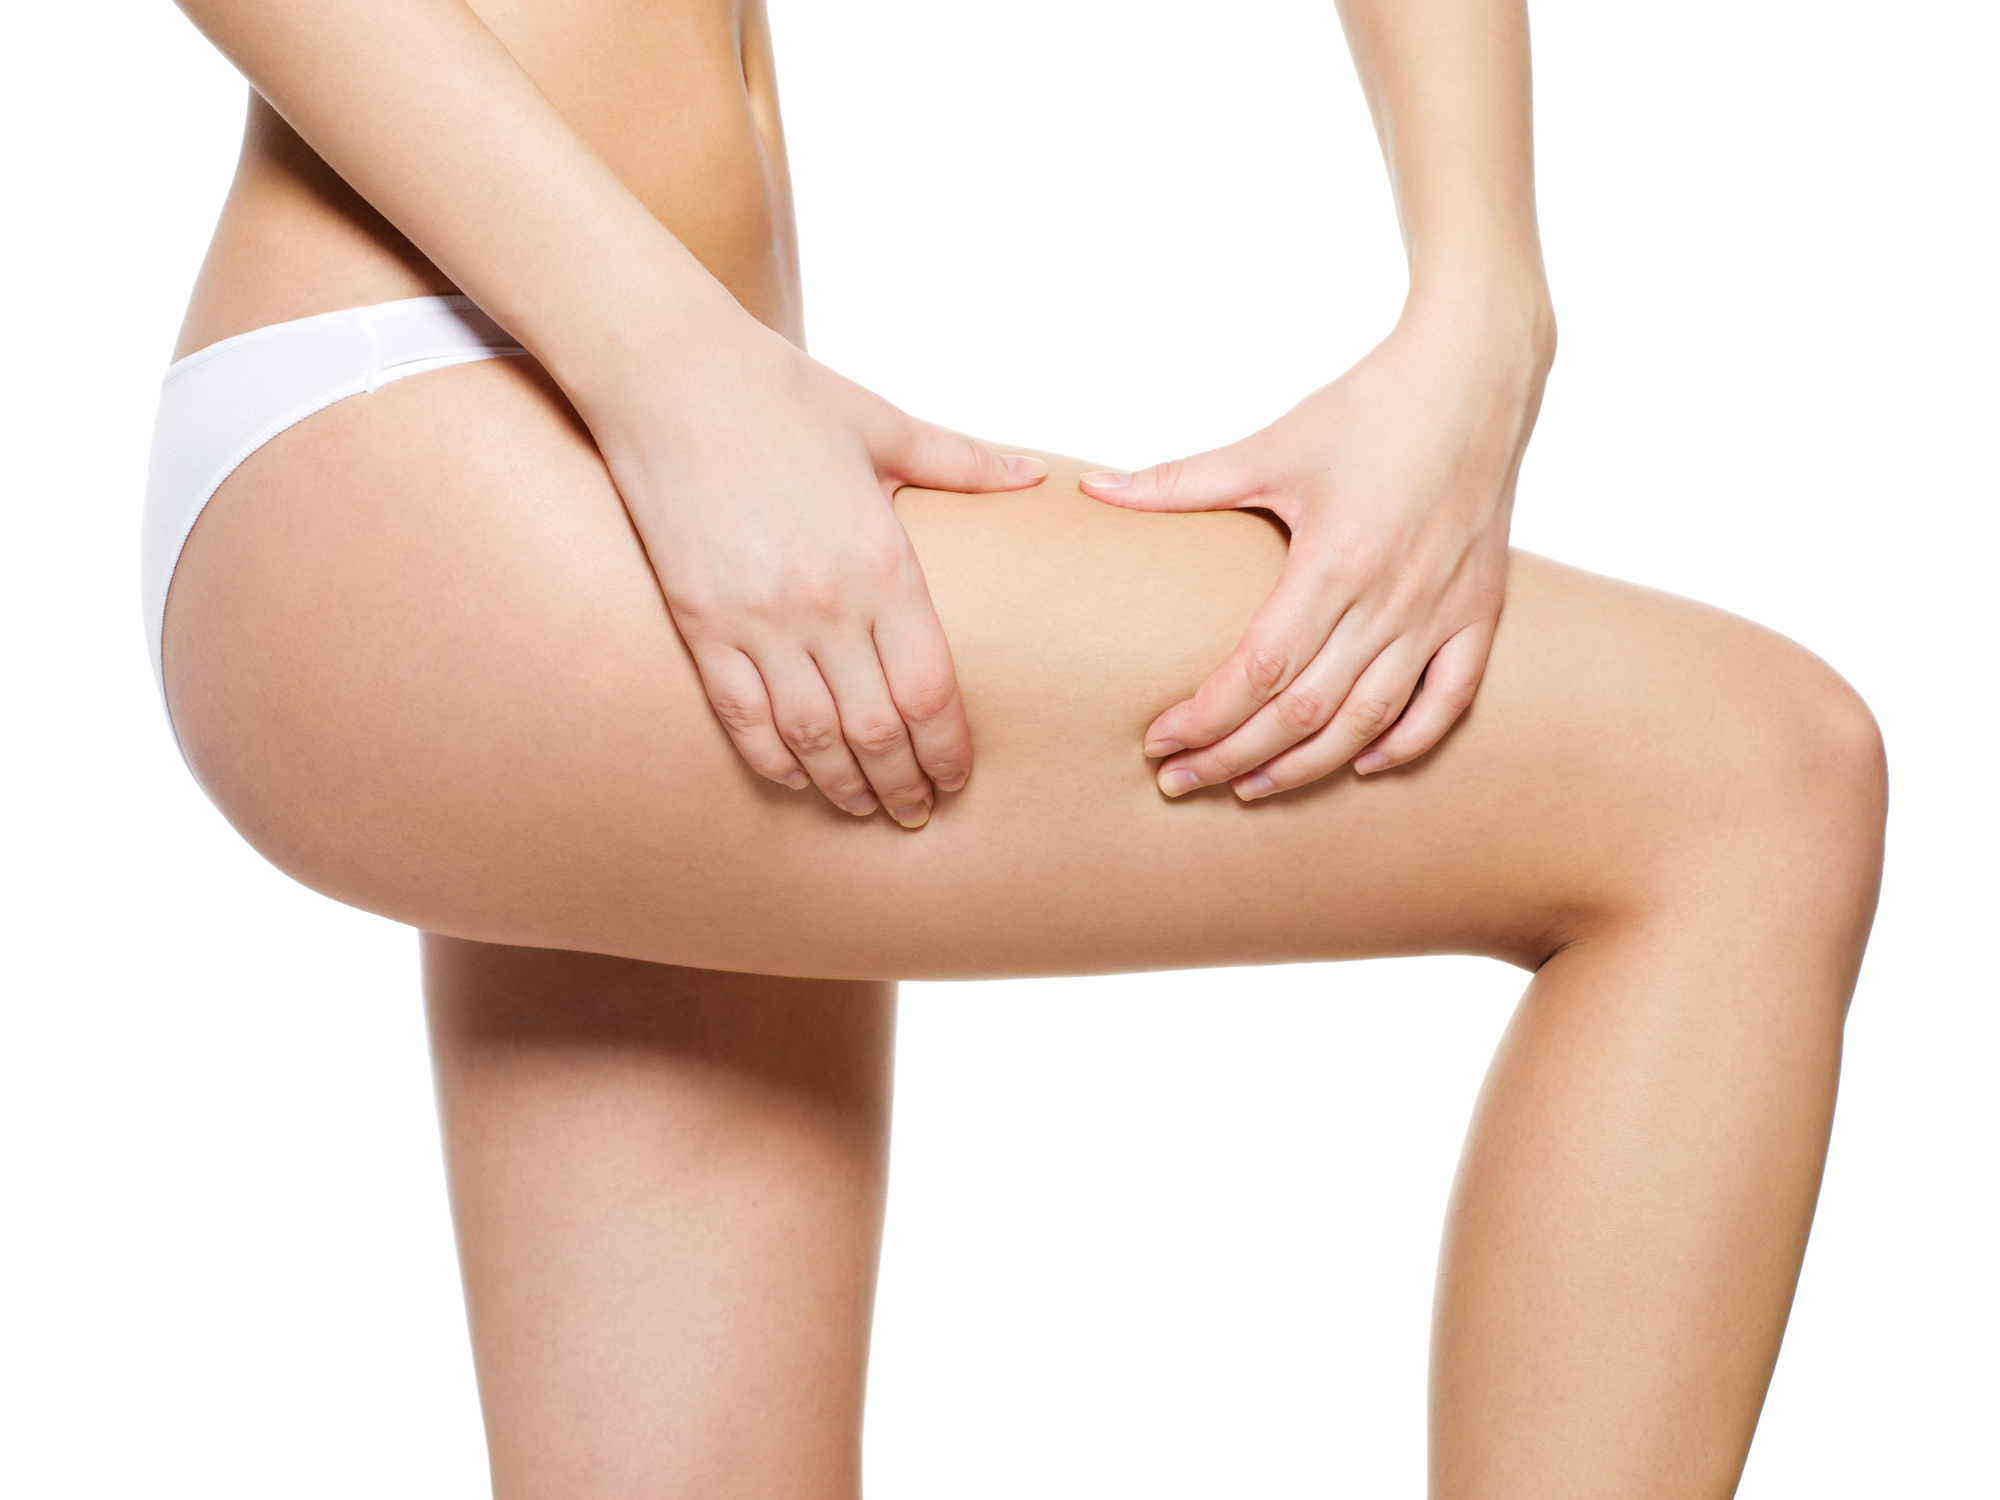 Thigh lift fort lauderdale | thigh lift surgery fl